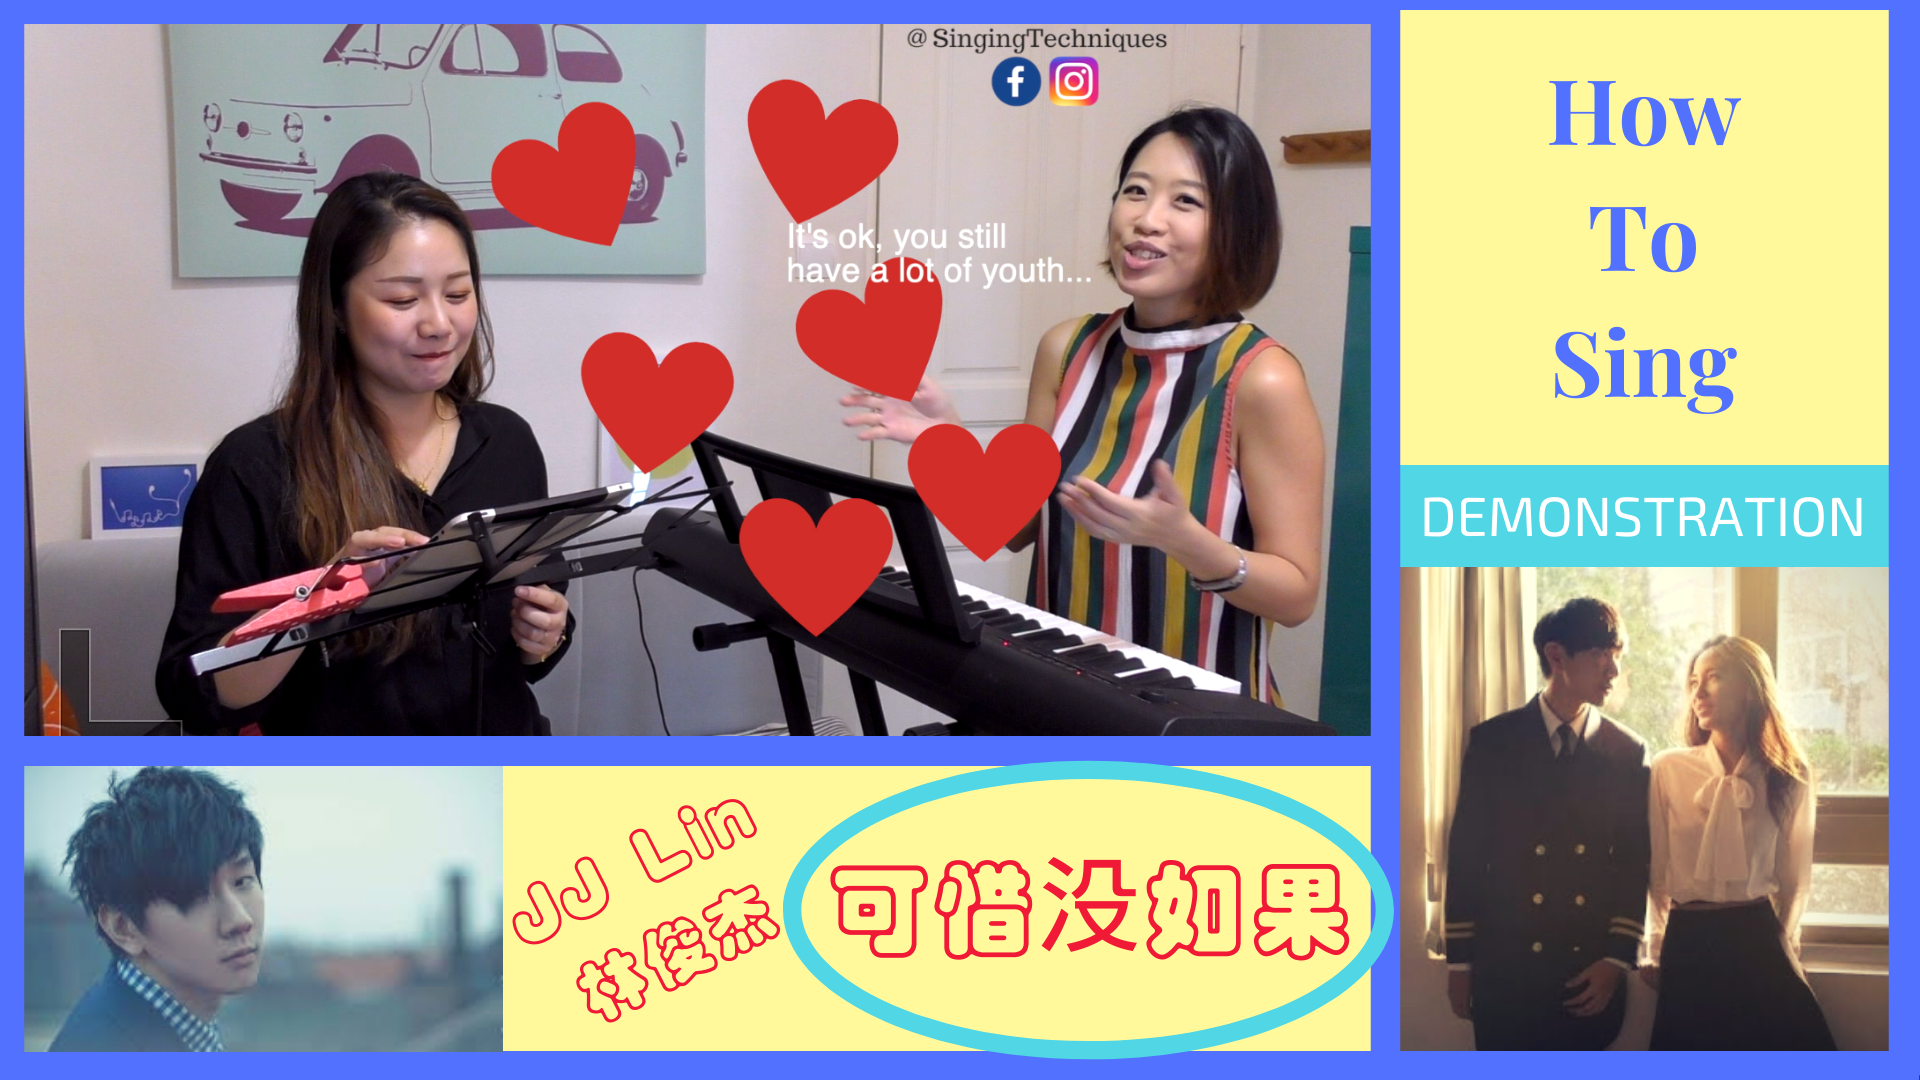 How to Sing 怎么唱 可惜没如果 林俊杰